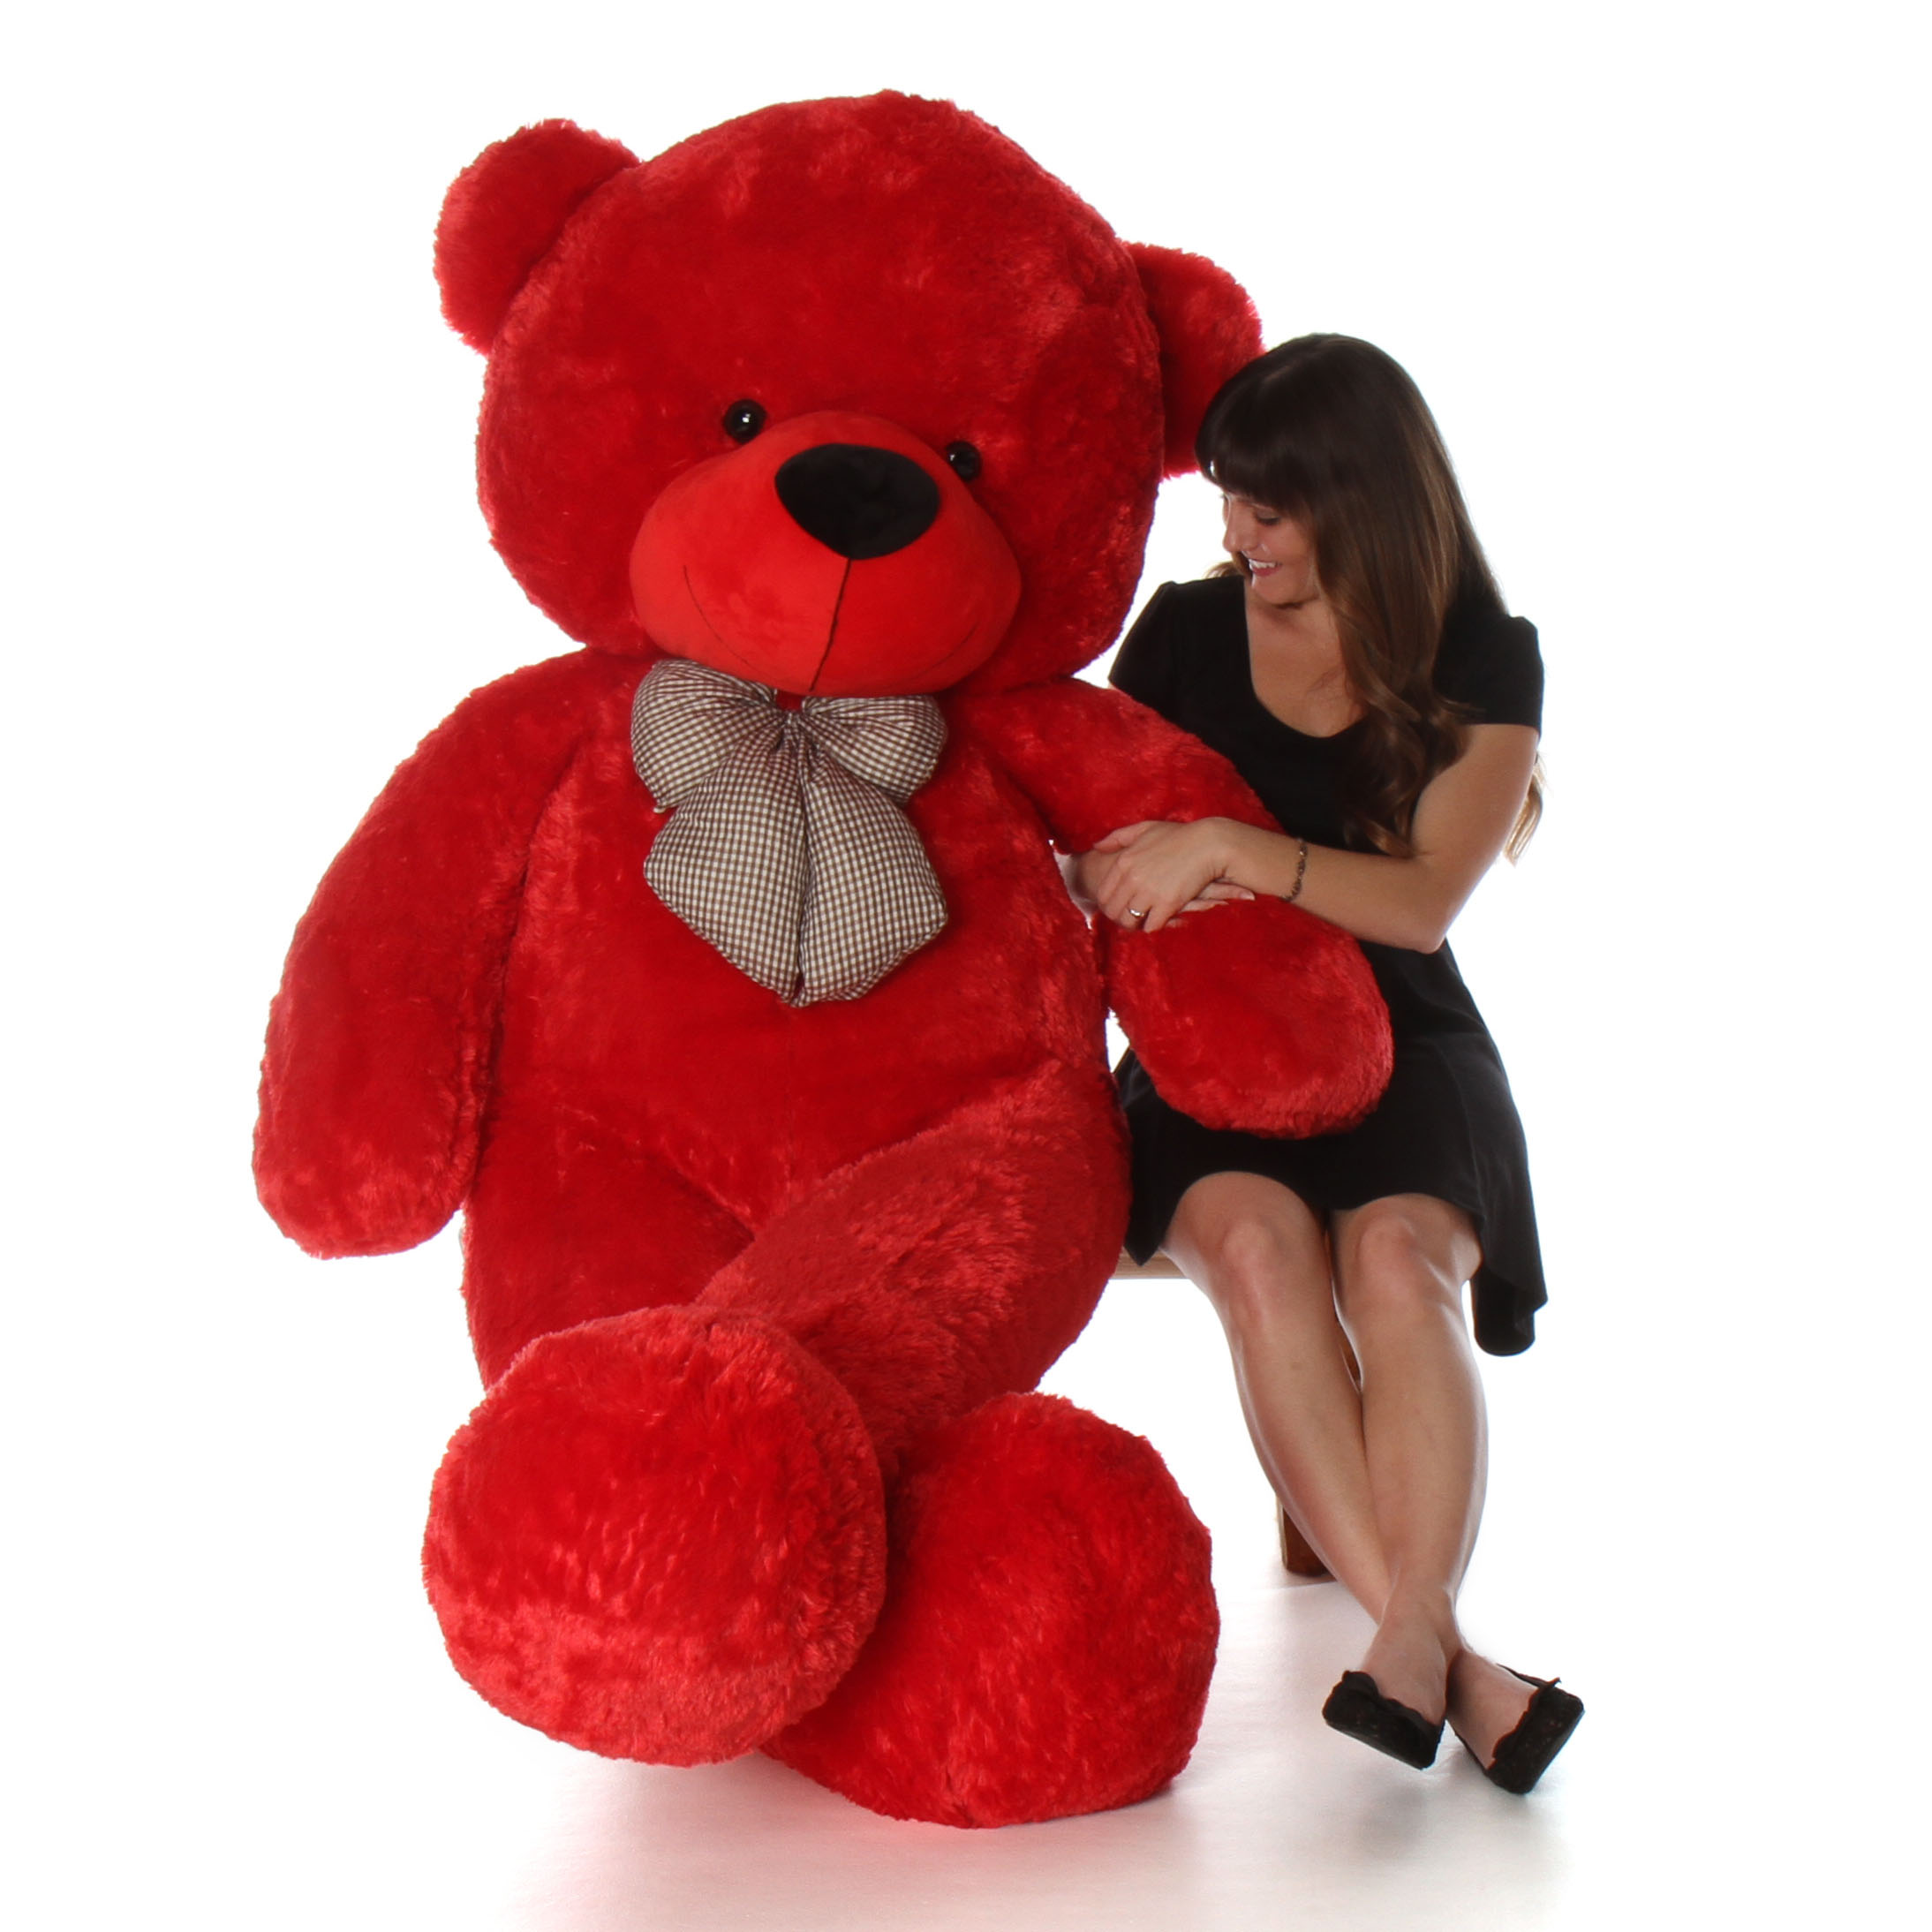 humongous-life-size-72in-red-teddy-bear-bitsy-cuddles-perfect-christmas-or-valentines-teddy-bear.jpg